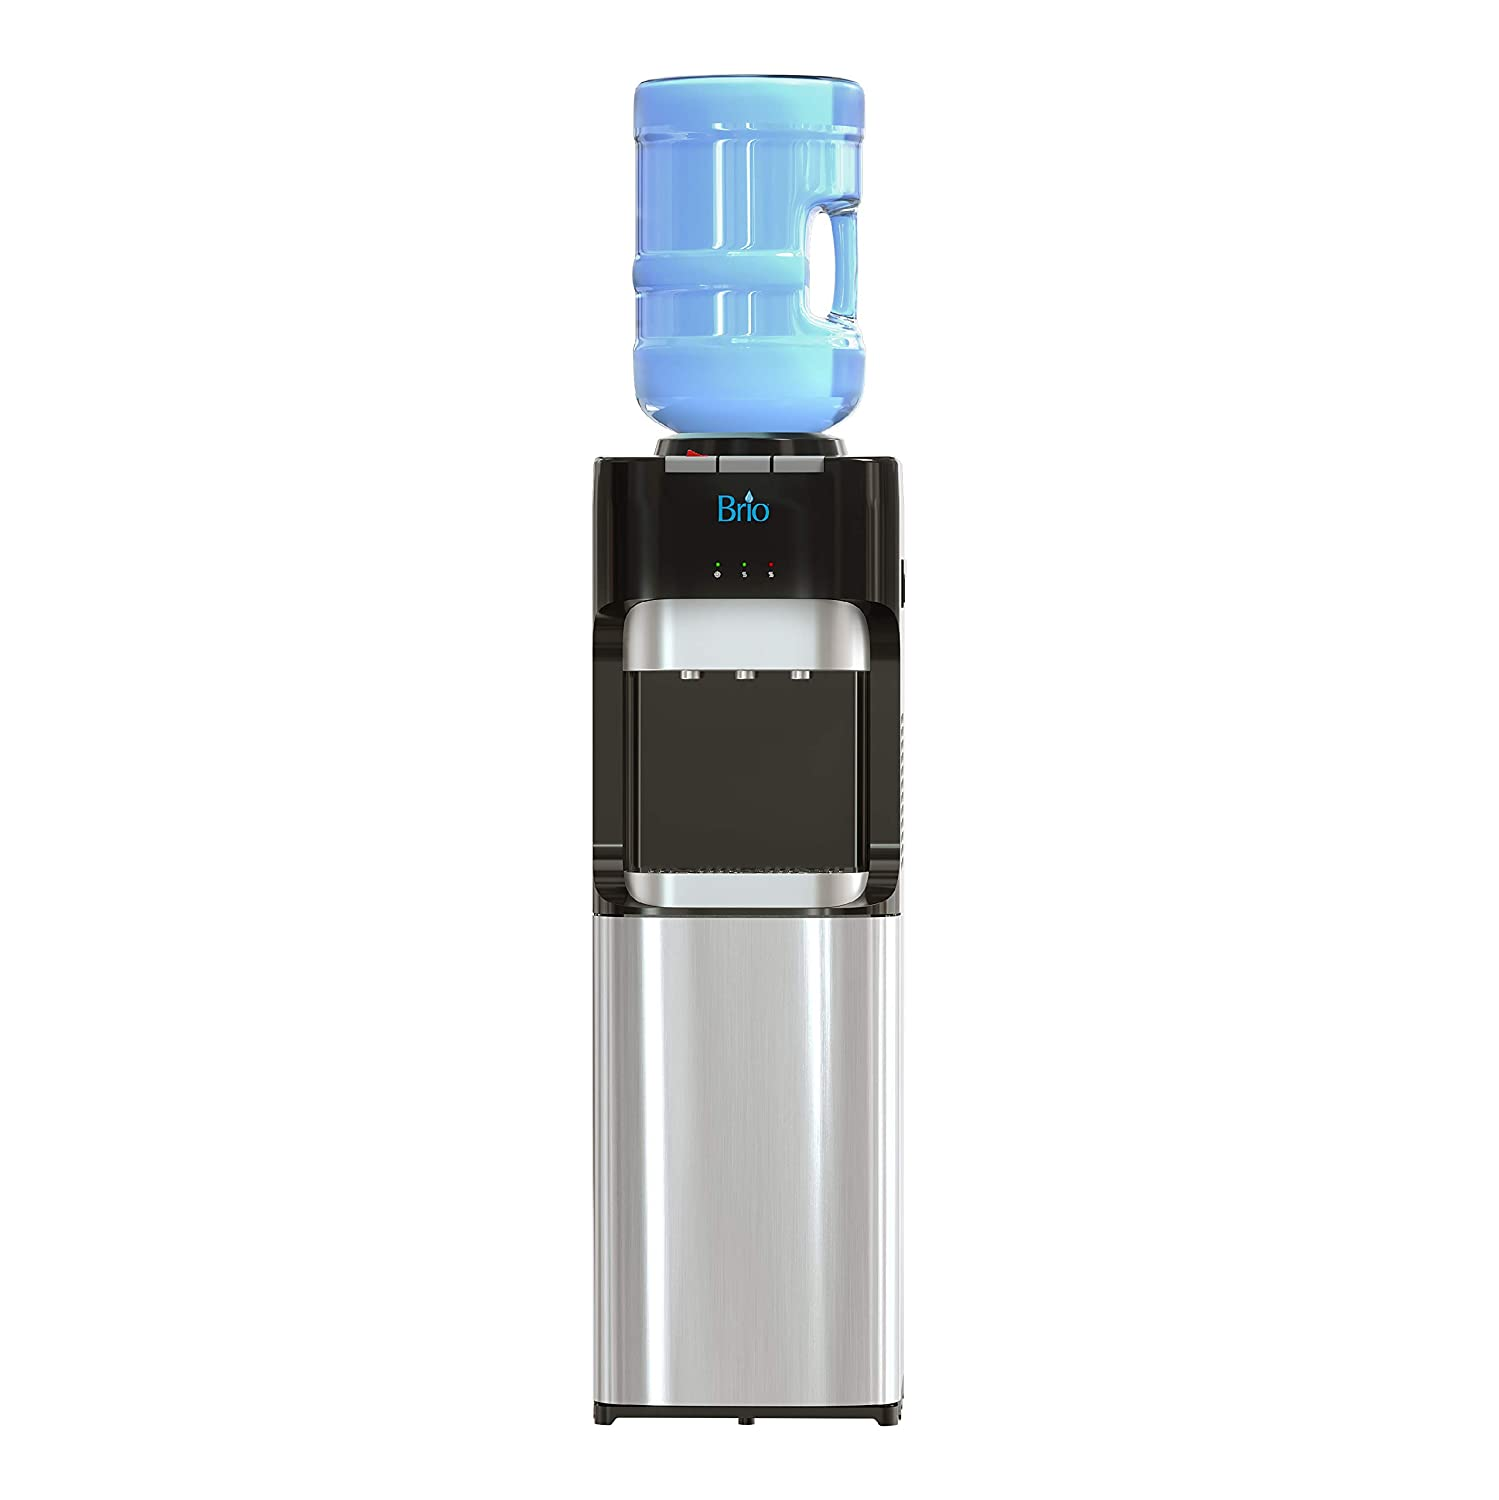 Brio Essential Series Top Loading Water Cooler Dispenser - Tri Temp Dispense, Child Safety Lock, Holds 3 or 5 Gallon Bottles - UL/Energy Star Approved